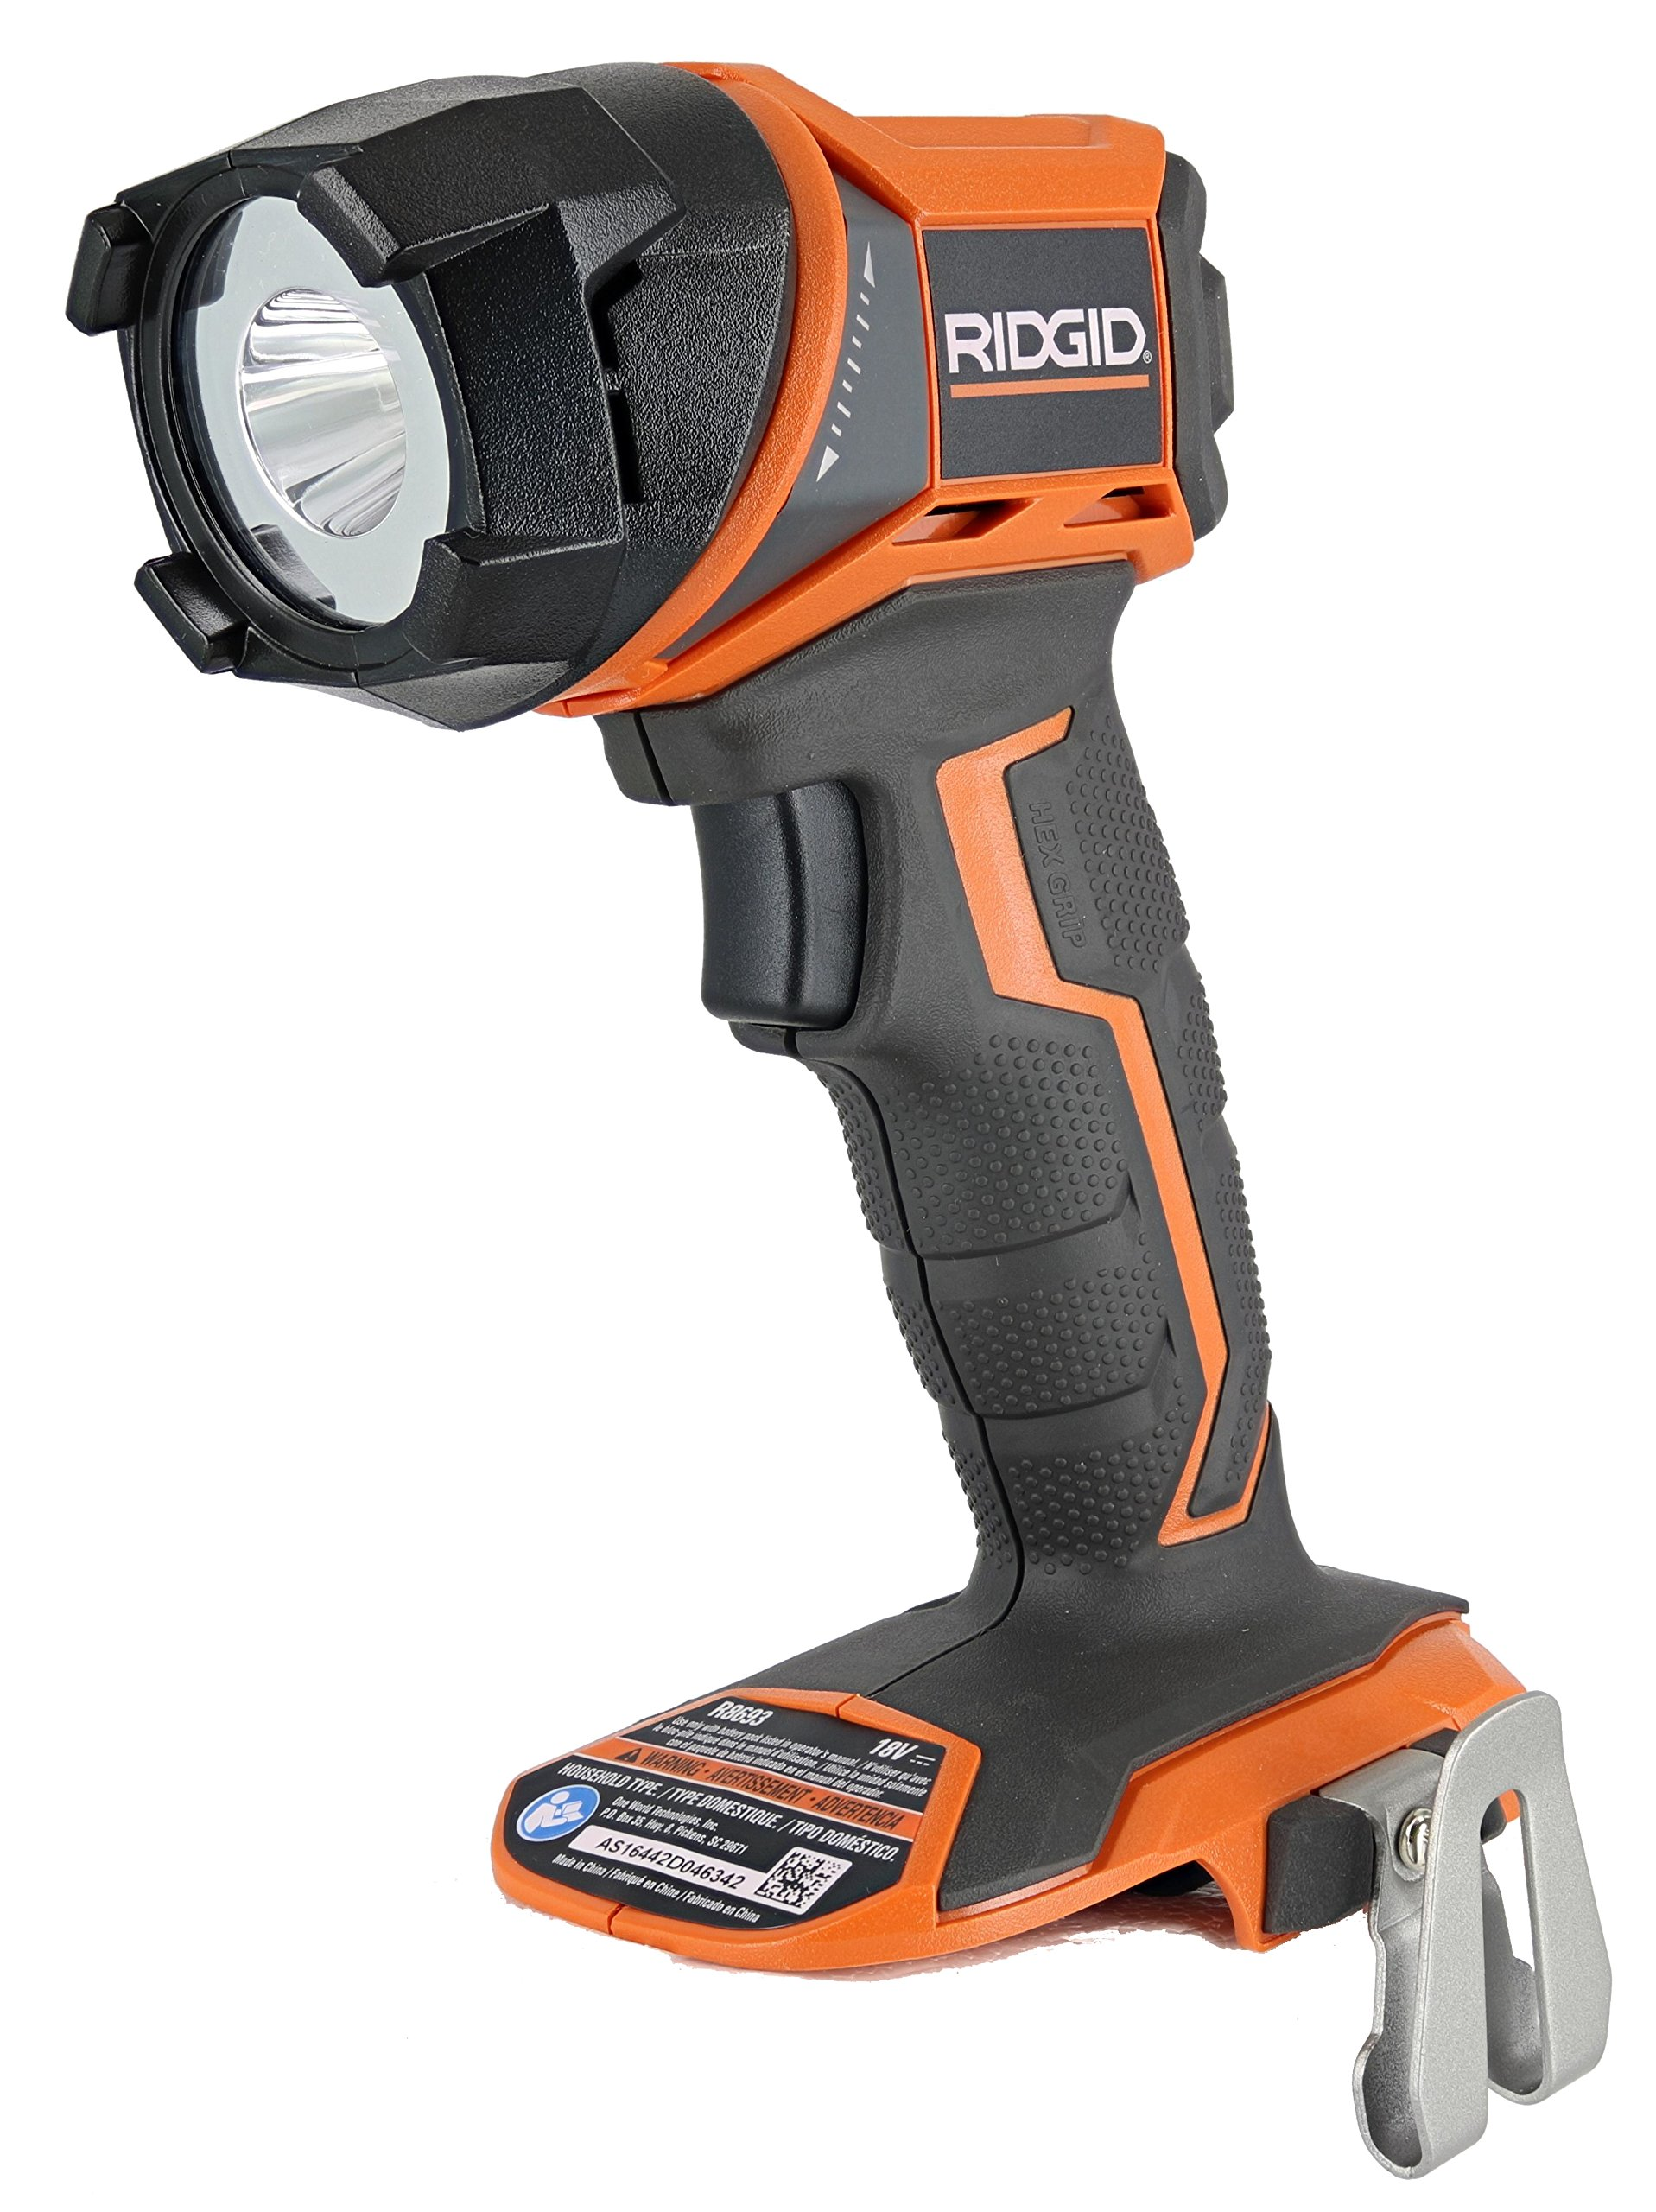 Ridgid R8693 Gen5x Lithium Ion Cordless LED Focused Hi-Beam Flashlight (Batteries Not Included, Flashlight Only)